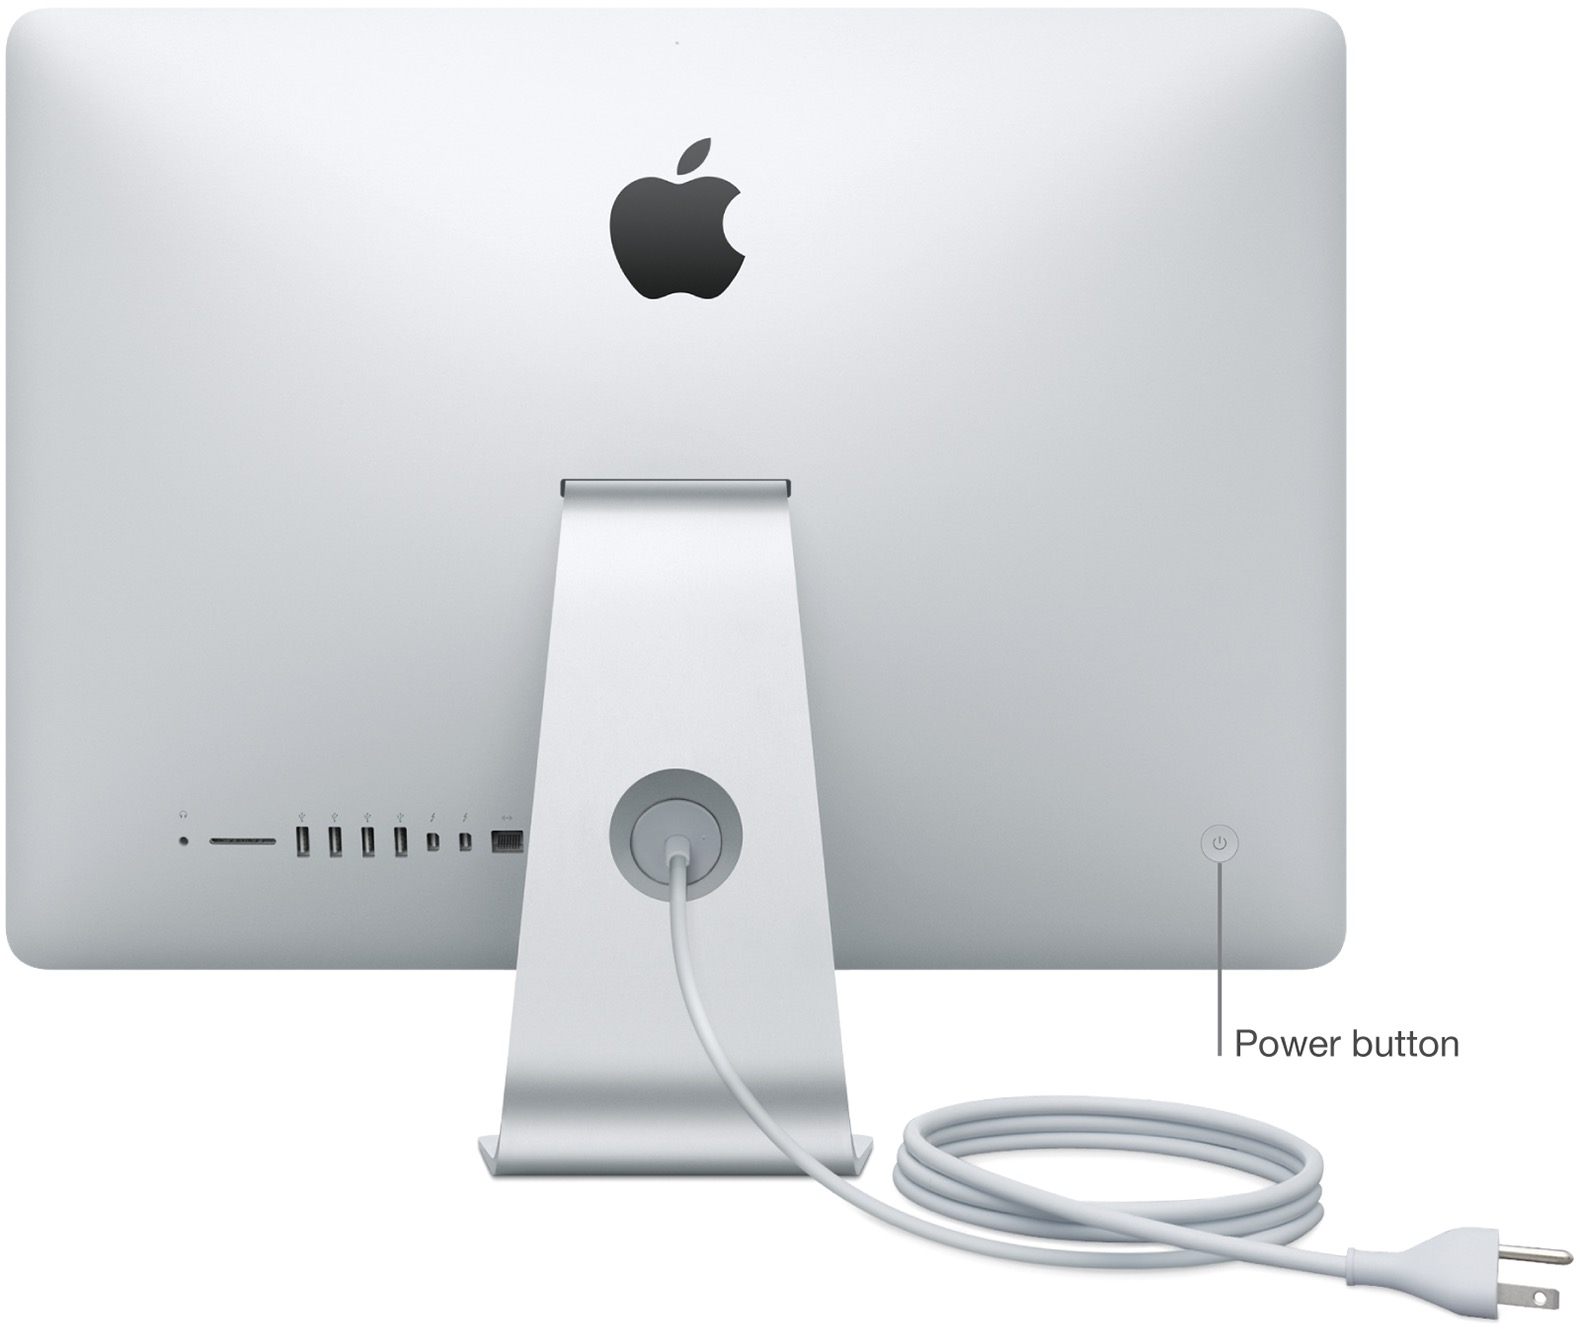 how to manually shut down a macbook pro